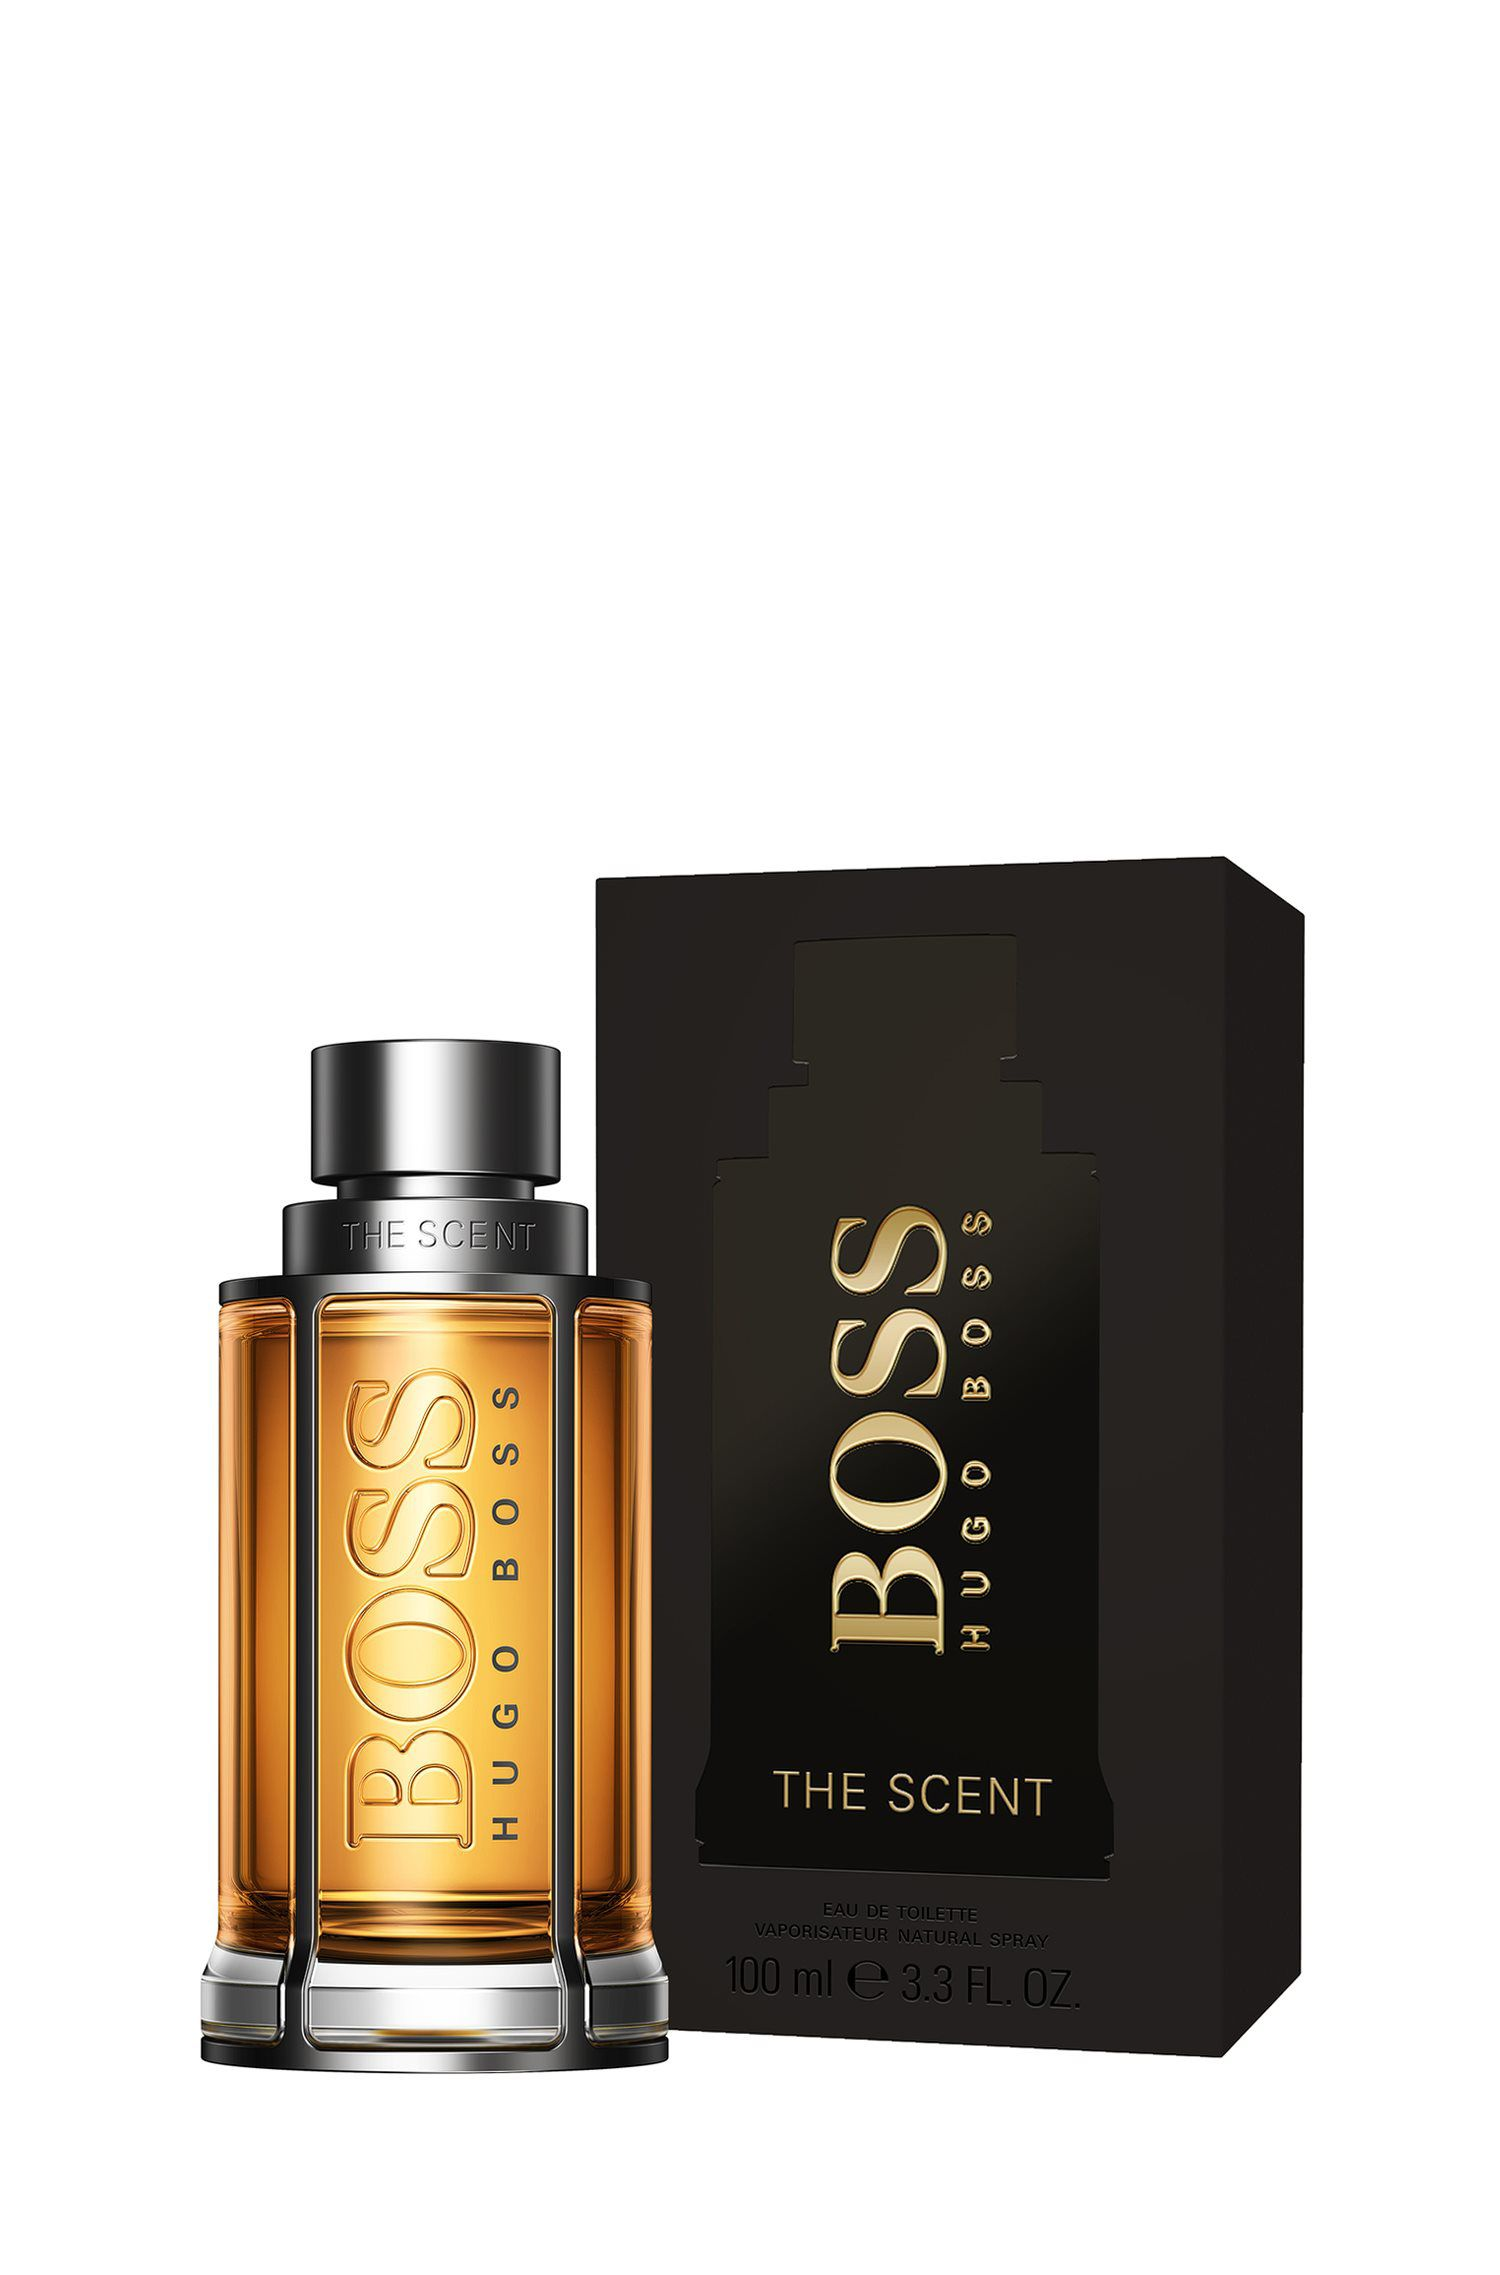 BOSS The Scent eau de toilette 100ml, Assorted-Pre-Pack